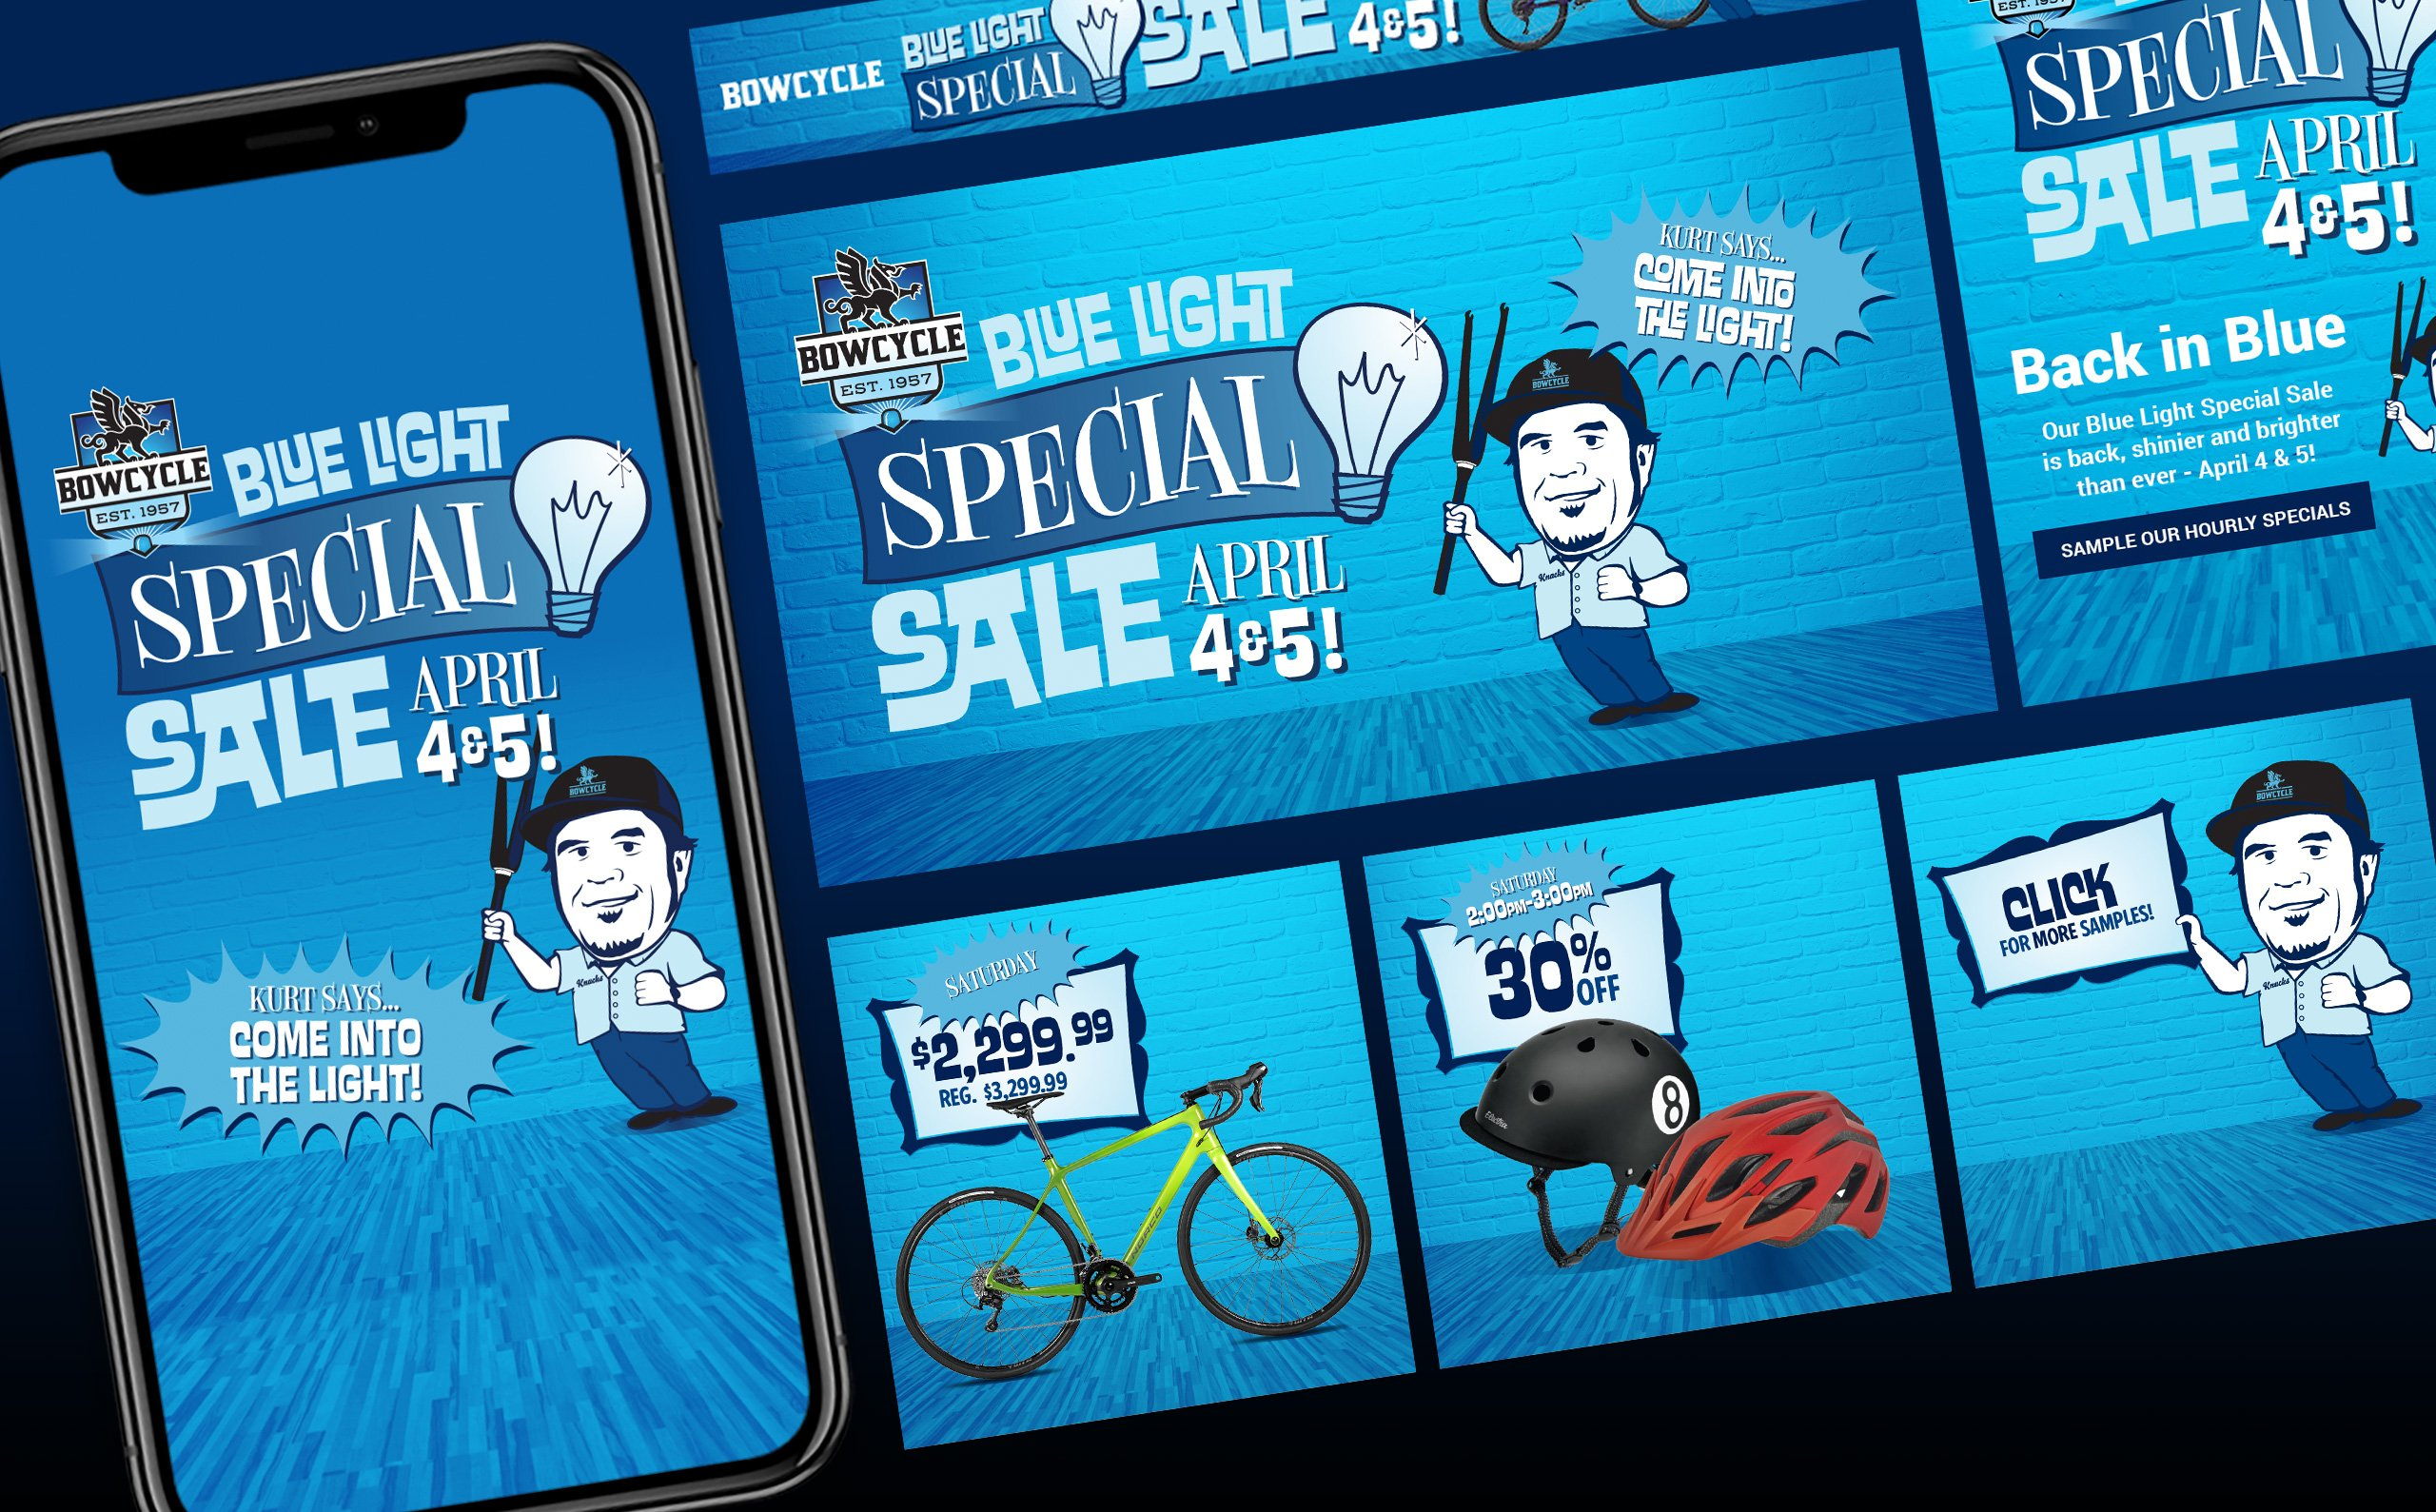 Bow Cycle Blue Light Special - Digital Ads